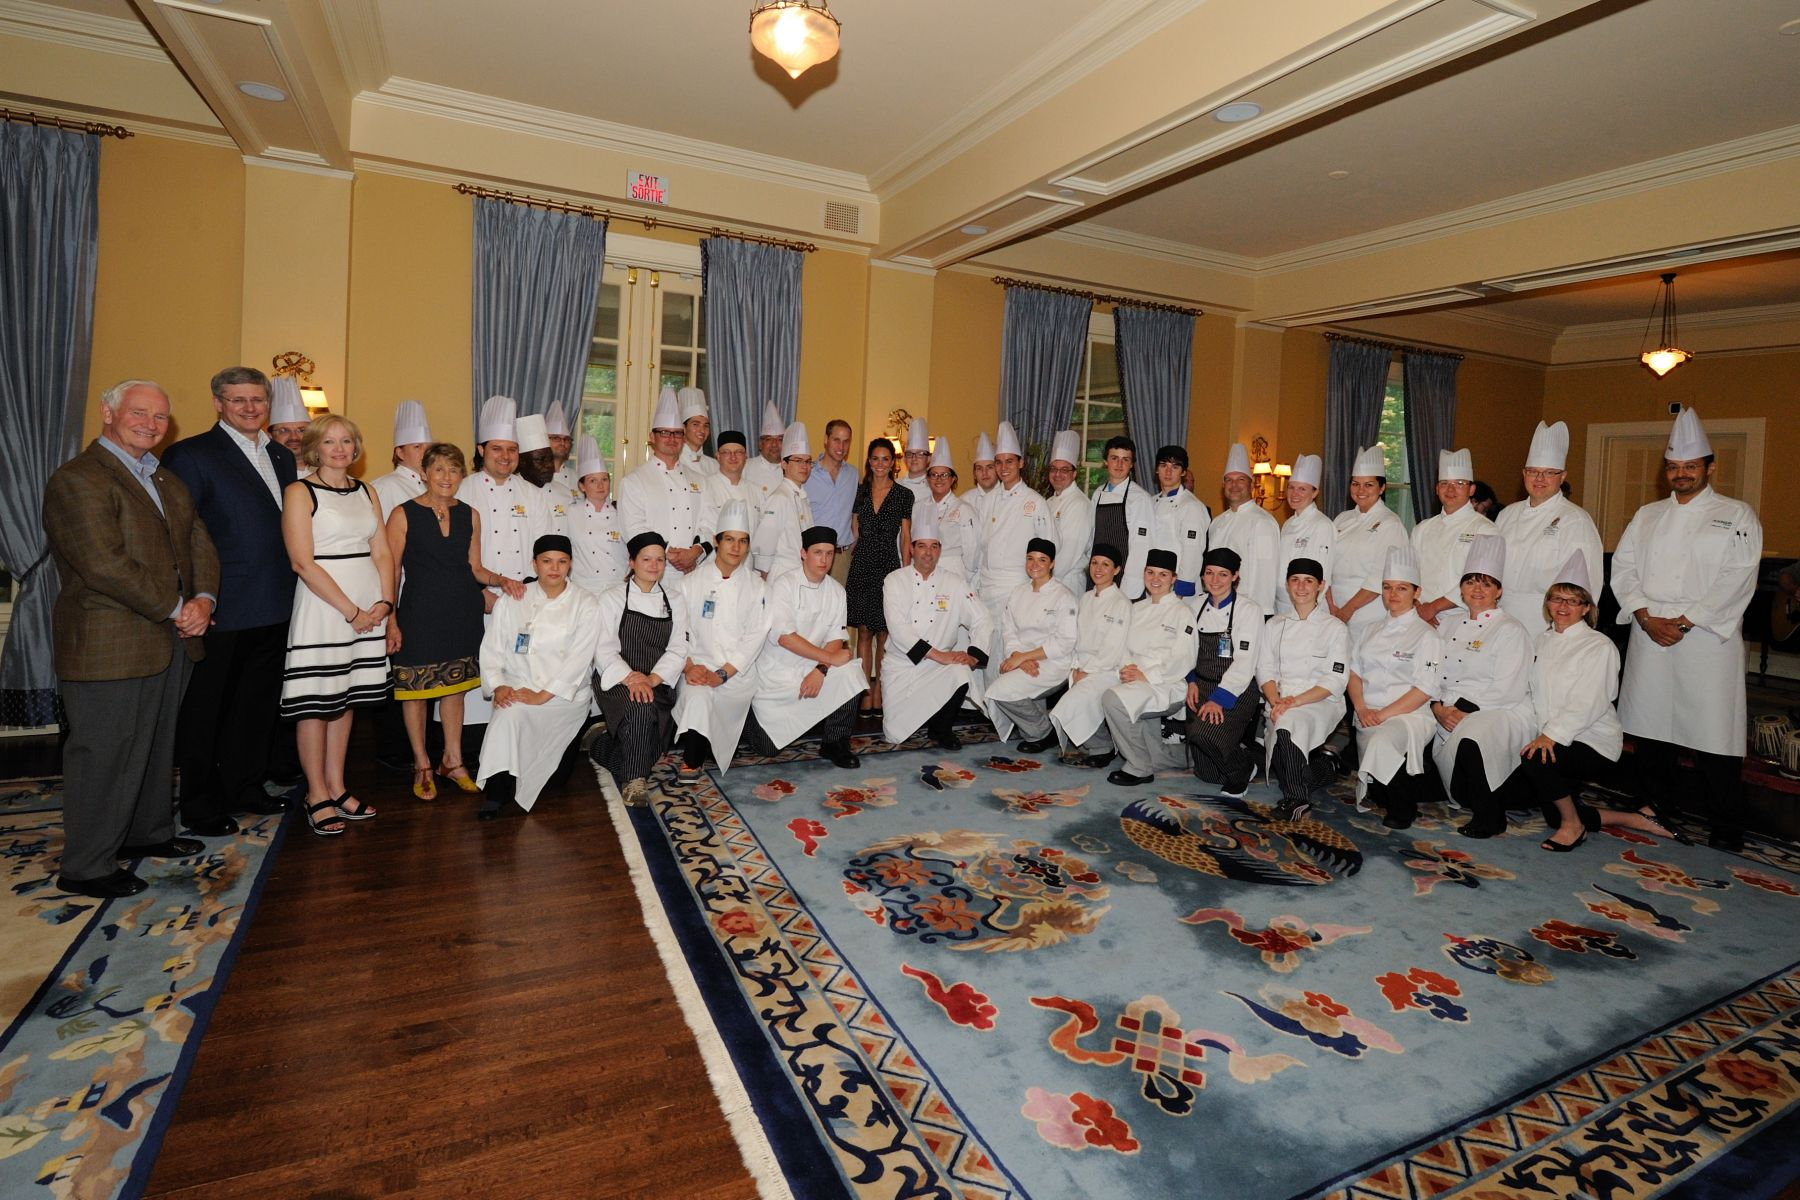 In addition, 22 young culinary professionals and students from across the country were mentored by Rideau Hall chefs as they assisted our culinary team with preparations and service for this evening.